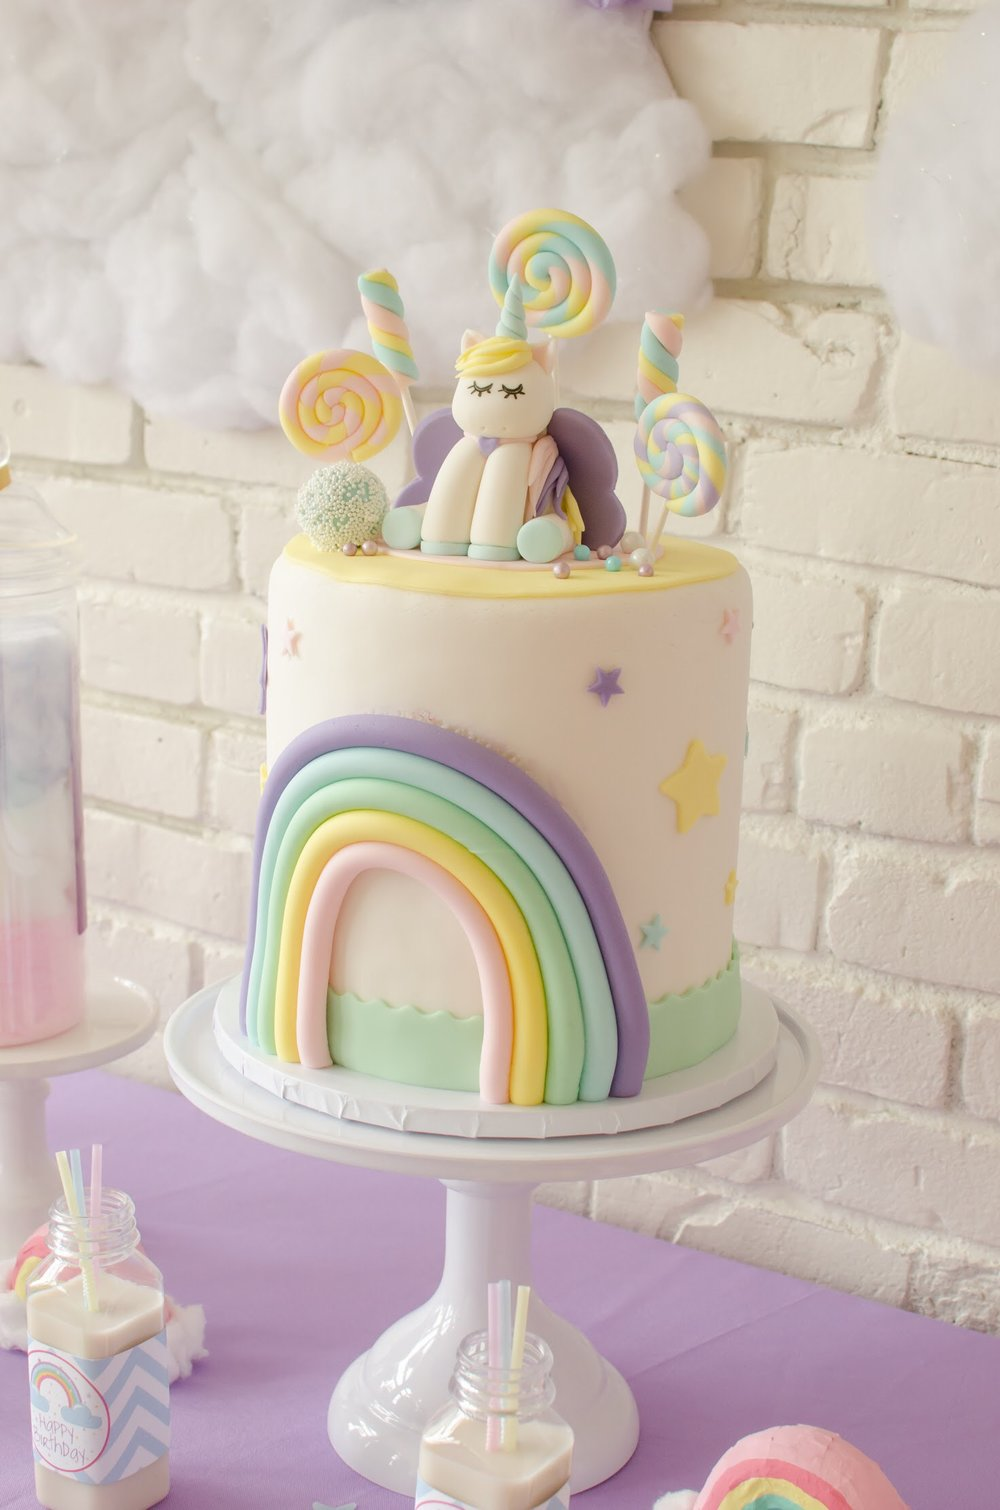 The cutest unicorn topper on a pastel rainbow unicorn cake. See more from this unicorn birthday party at Mint Event Design www.minteventdesign.com #unicornparty #unicorncake #birthdayparty #birthdaypartyideas #birthdaydesserts #birthdaycake